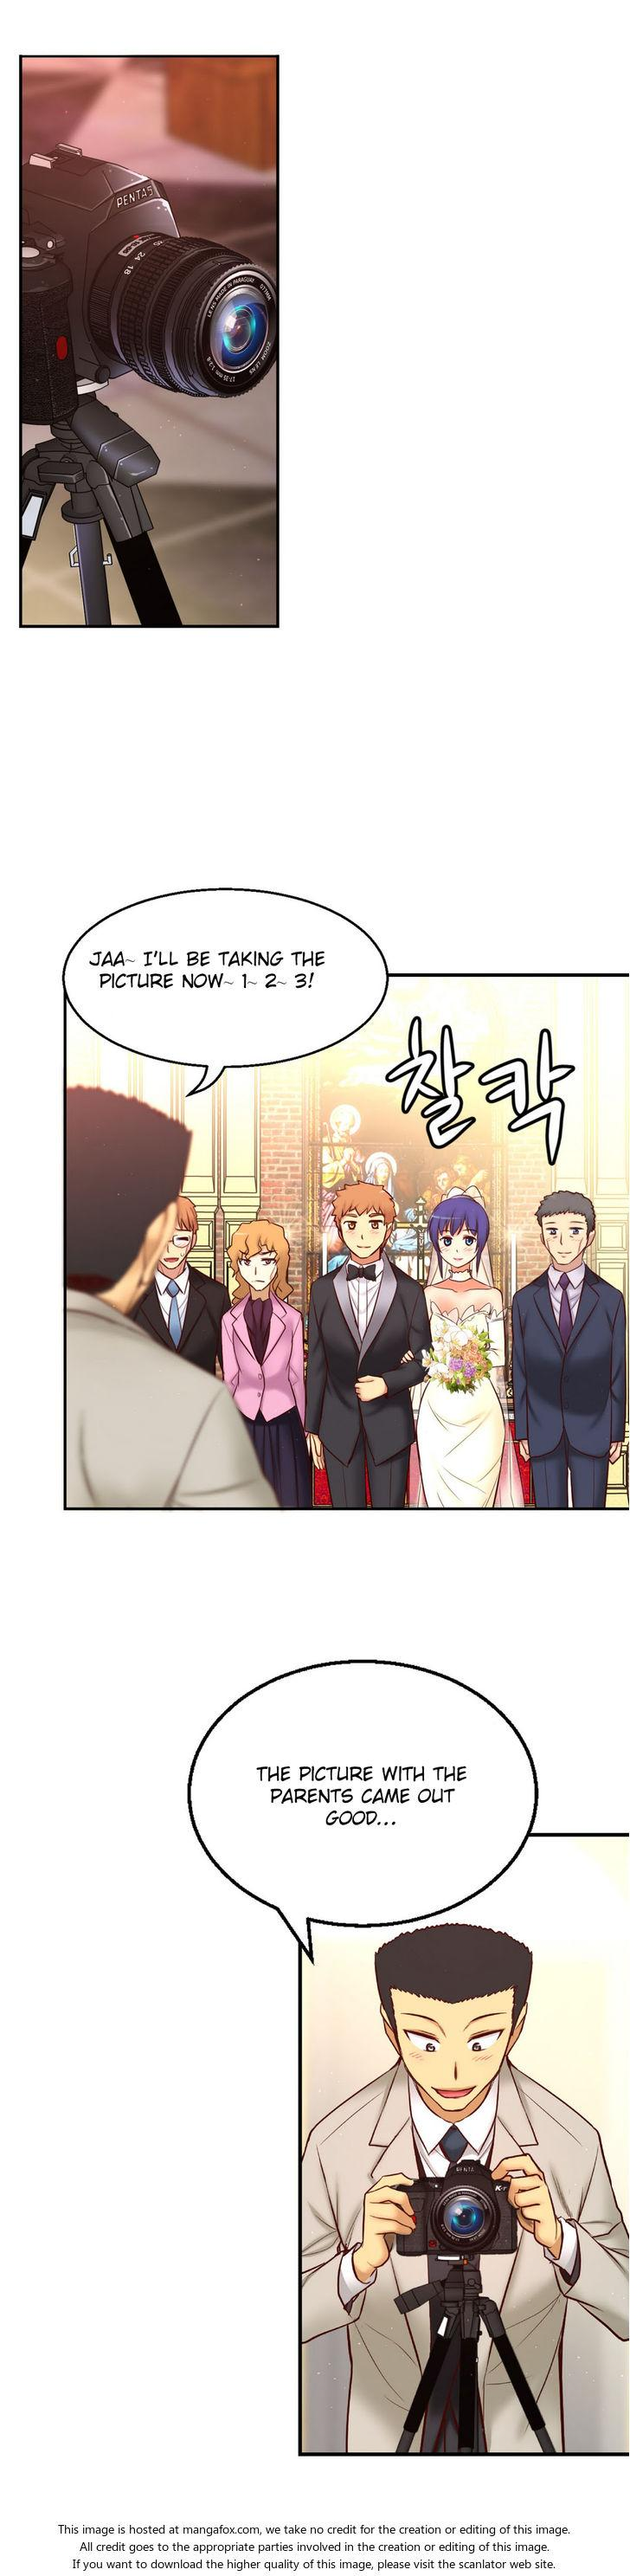 [Donggul Gom] She is Young (English) Part 1/2 1945